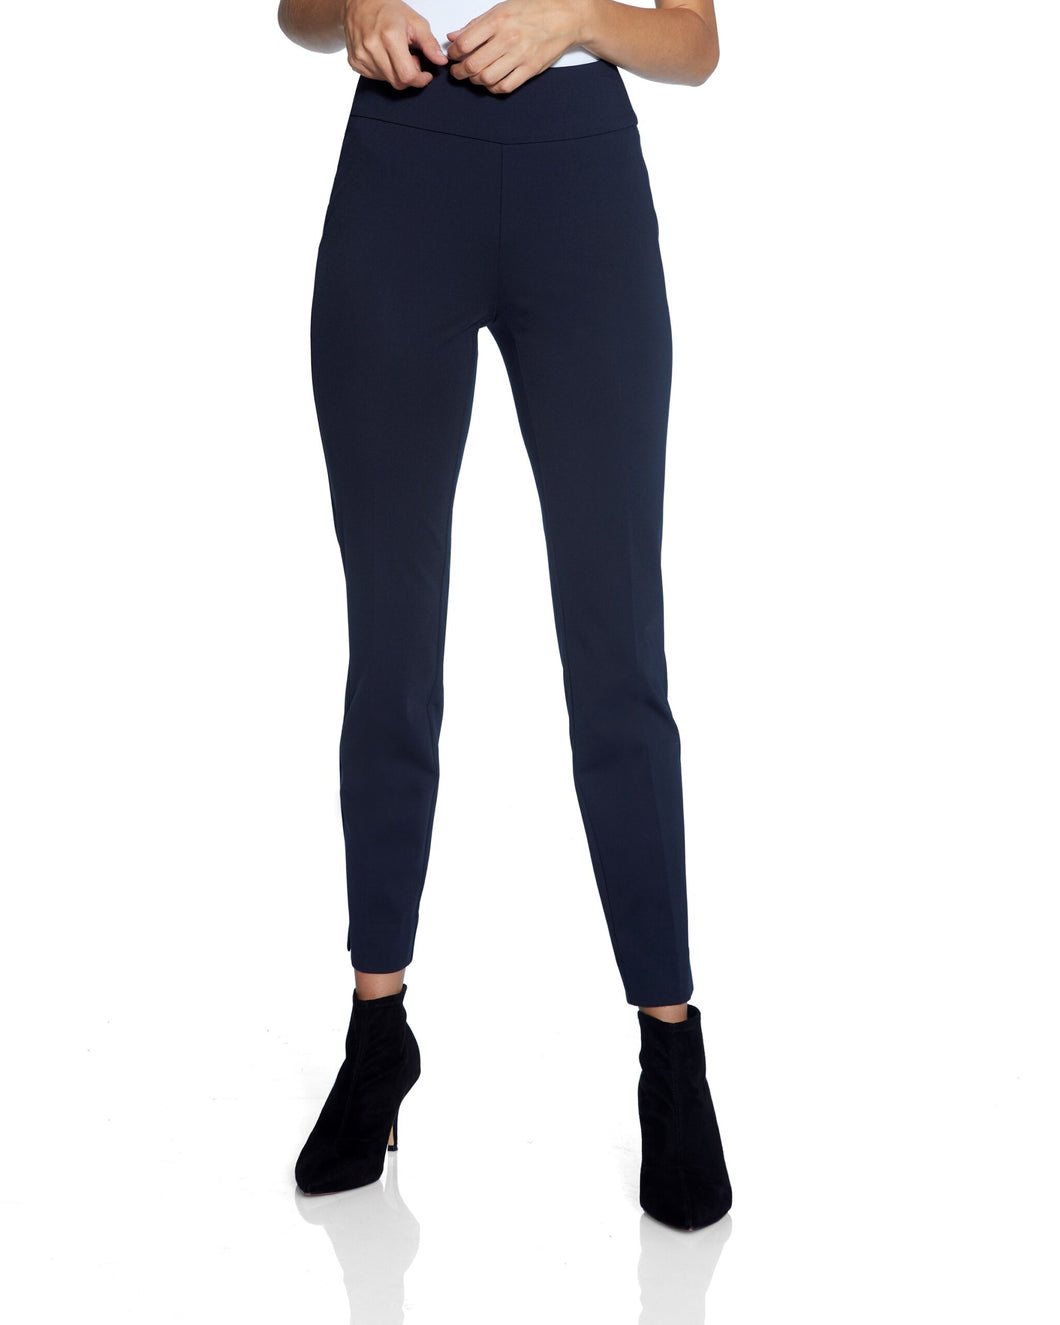 UP! Pant Roma Basic Slim Pant - Navy